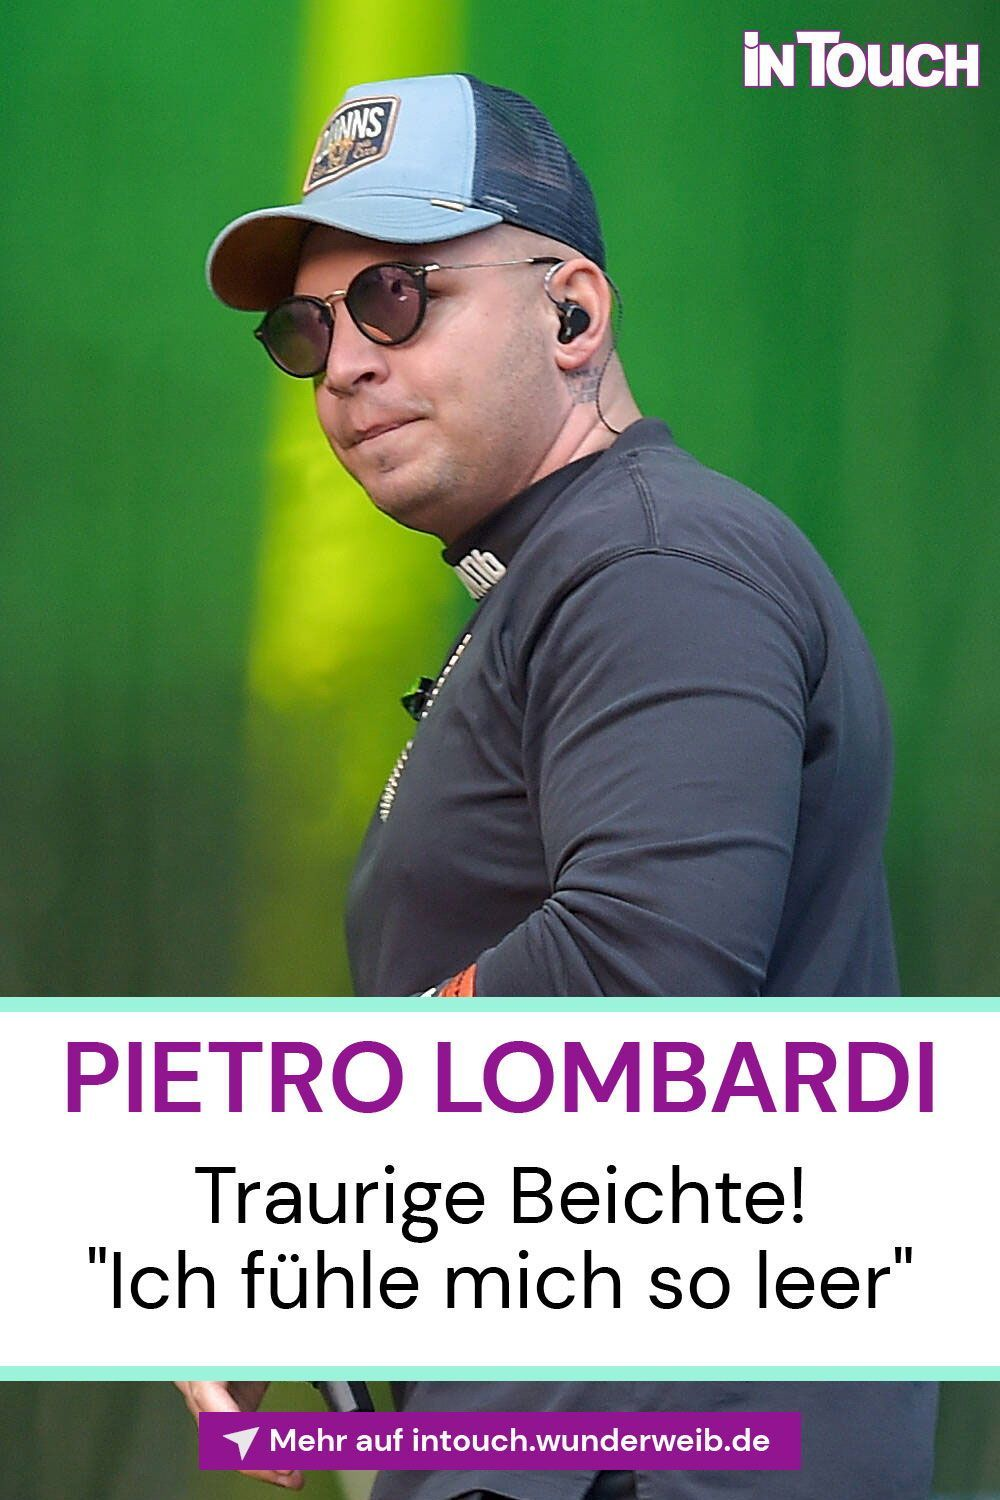 Pietro Lombardi: Ich fühle mich so leer! | InTouch in